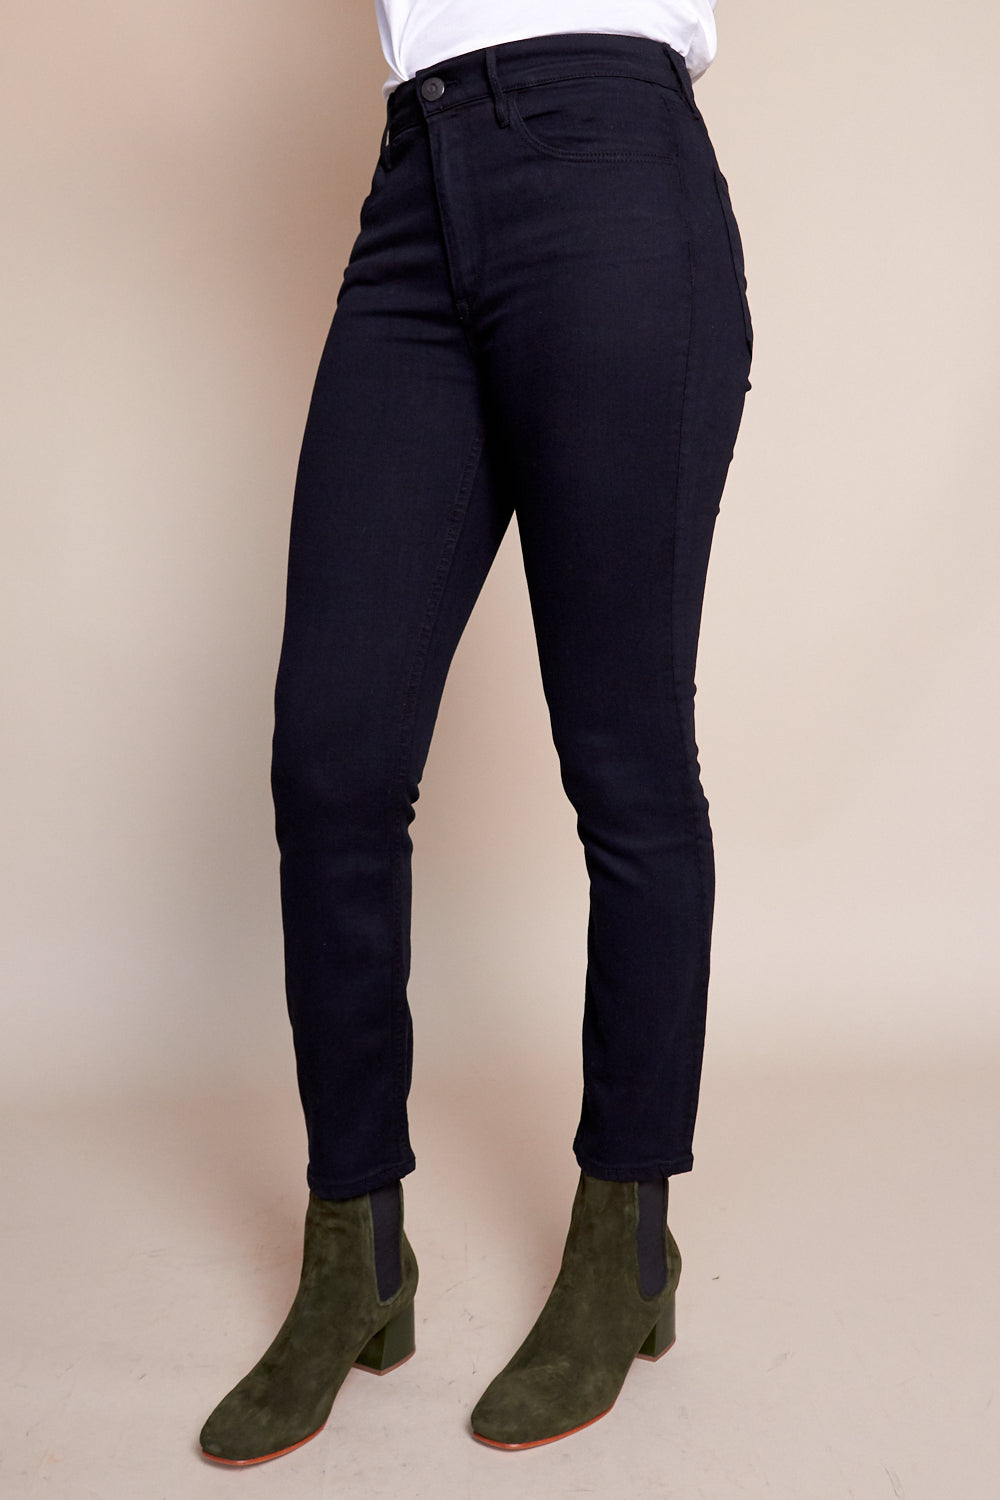 W4 Colette Slim Crop Jean in Tar Black